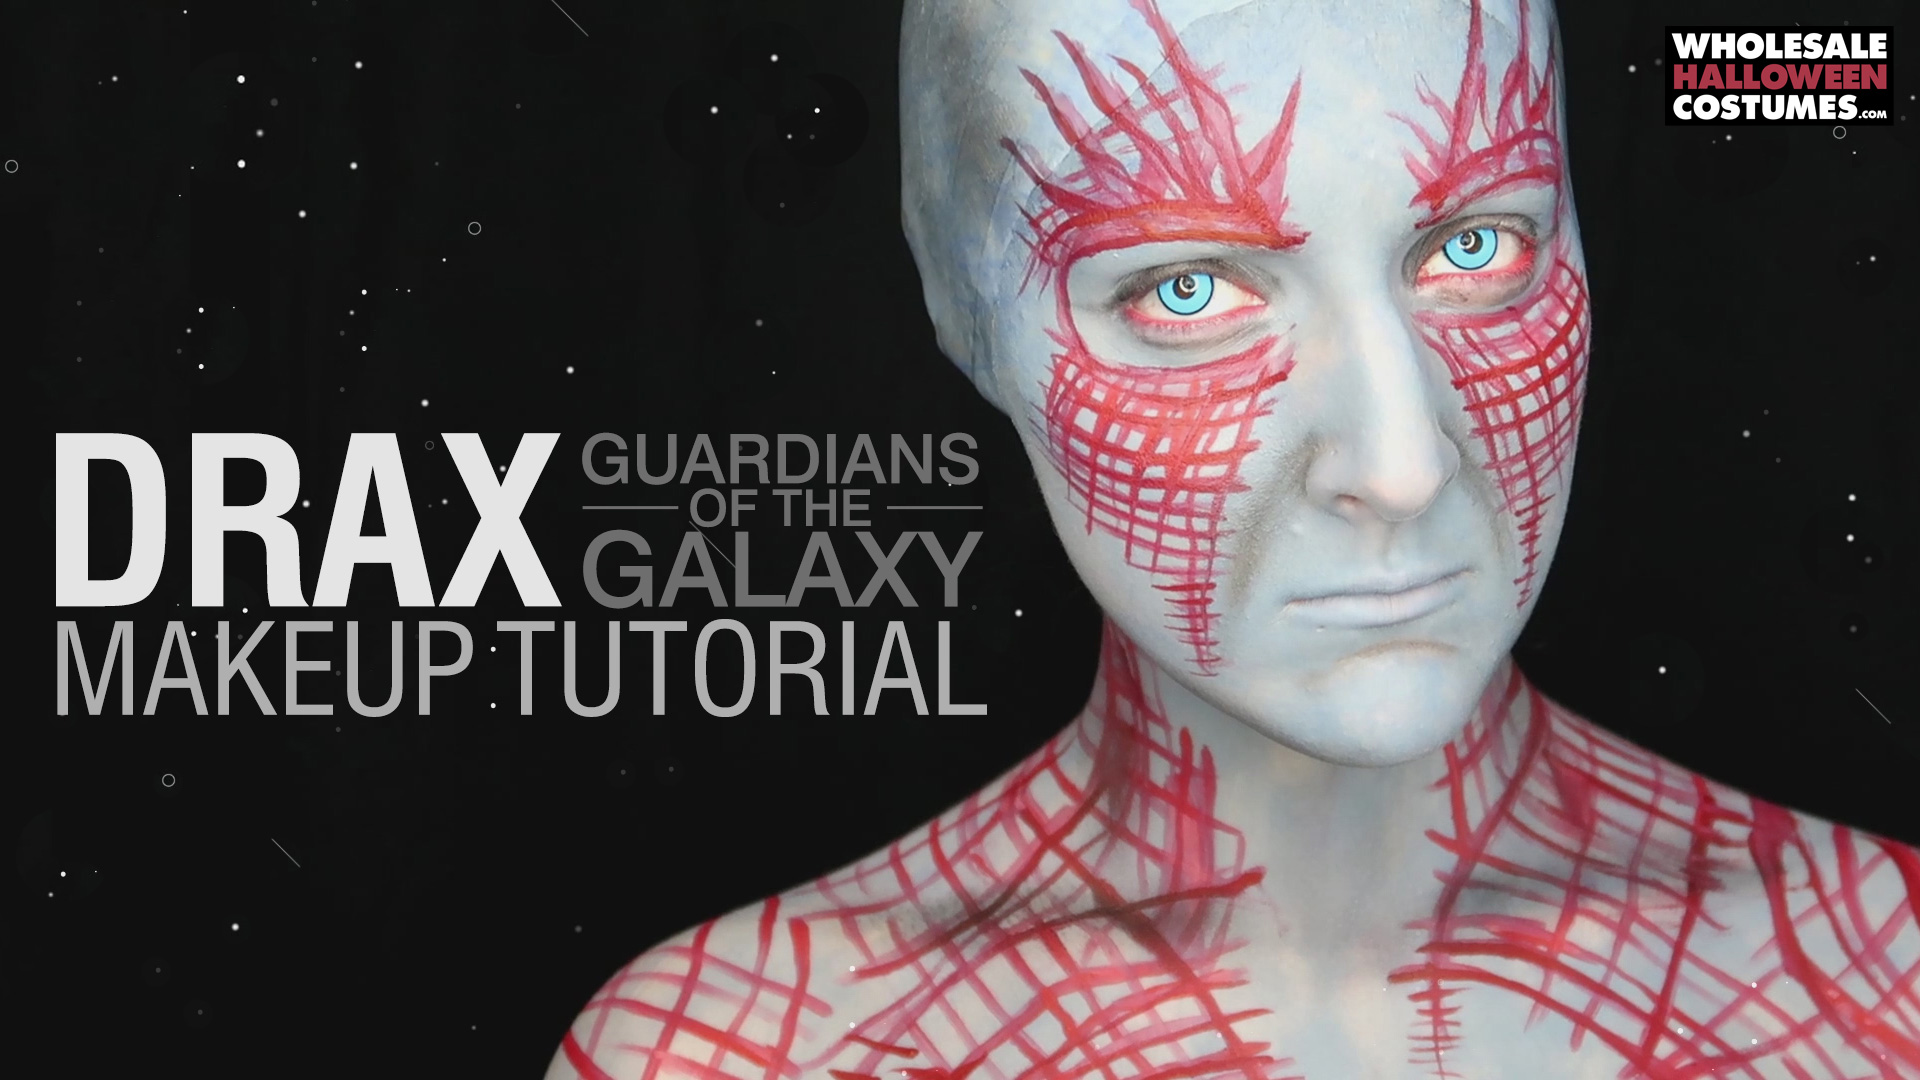 Drax Makeup Tutorial